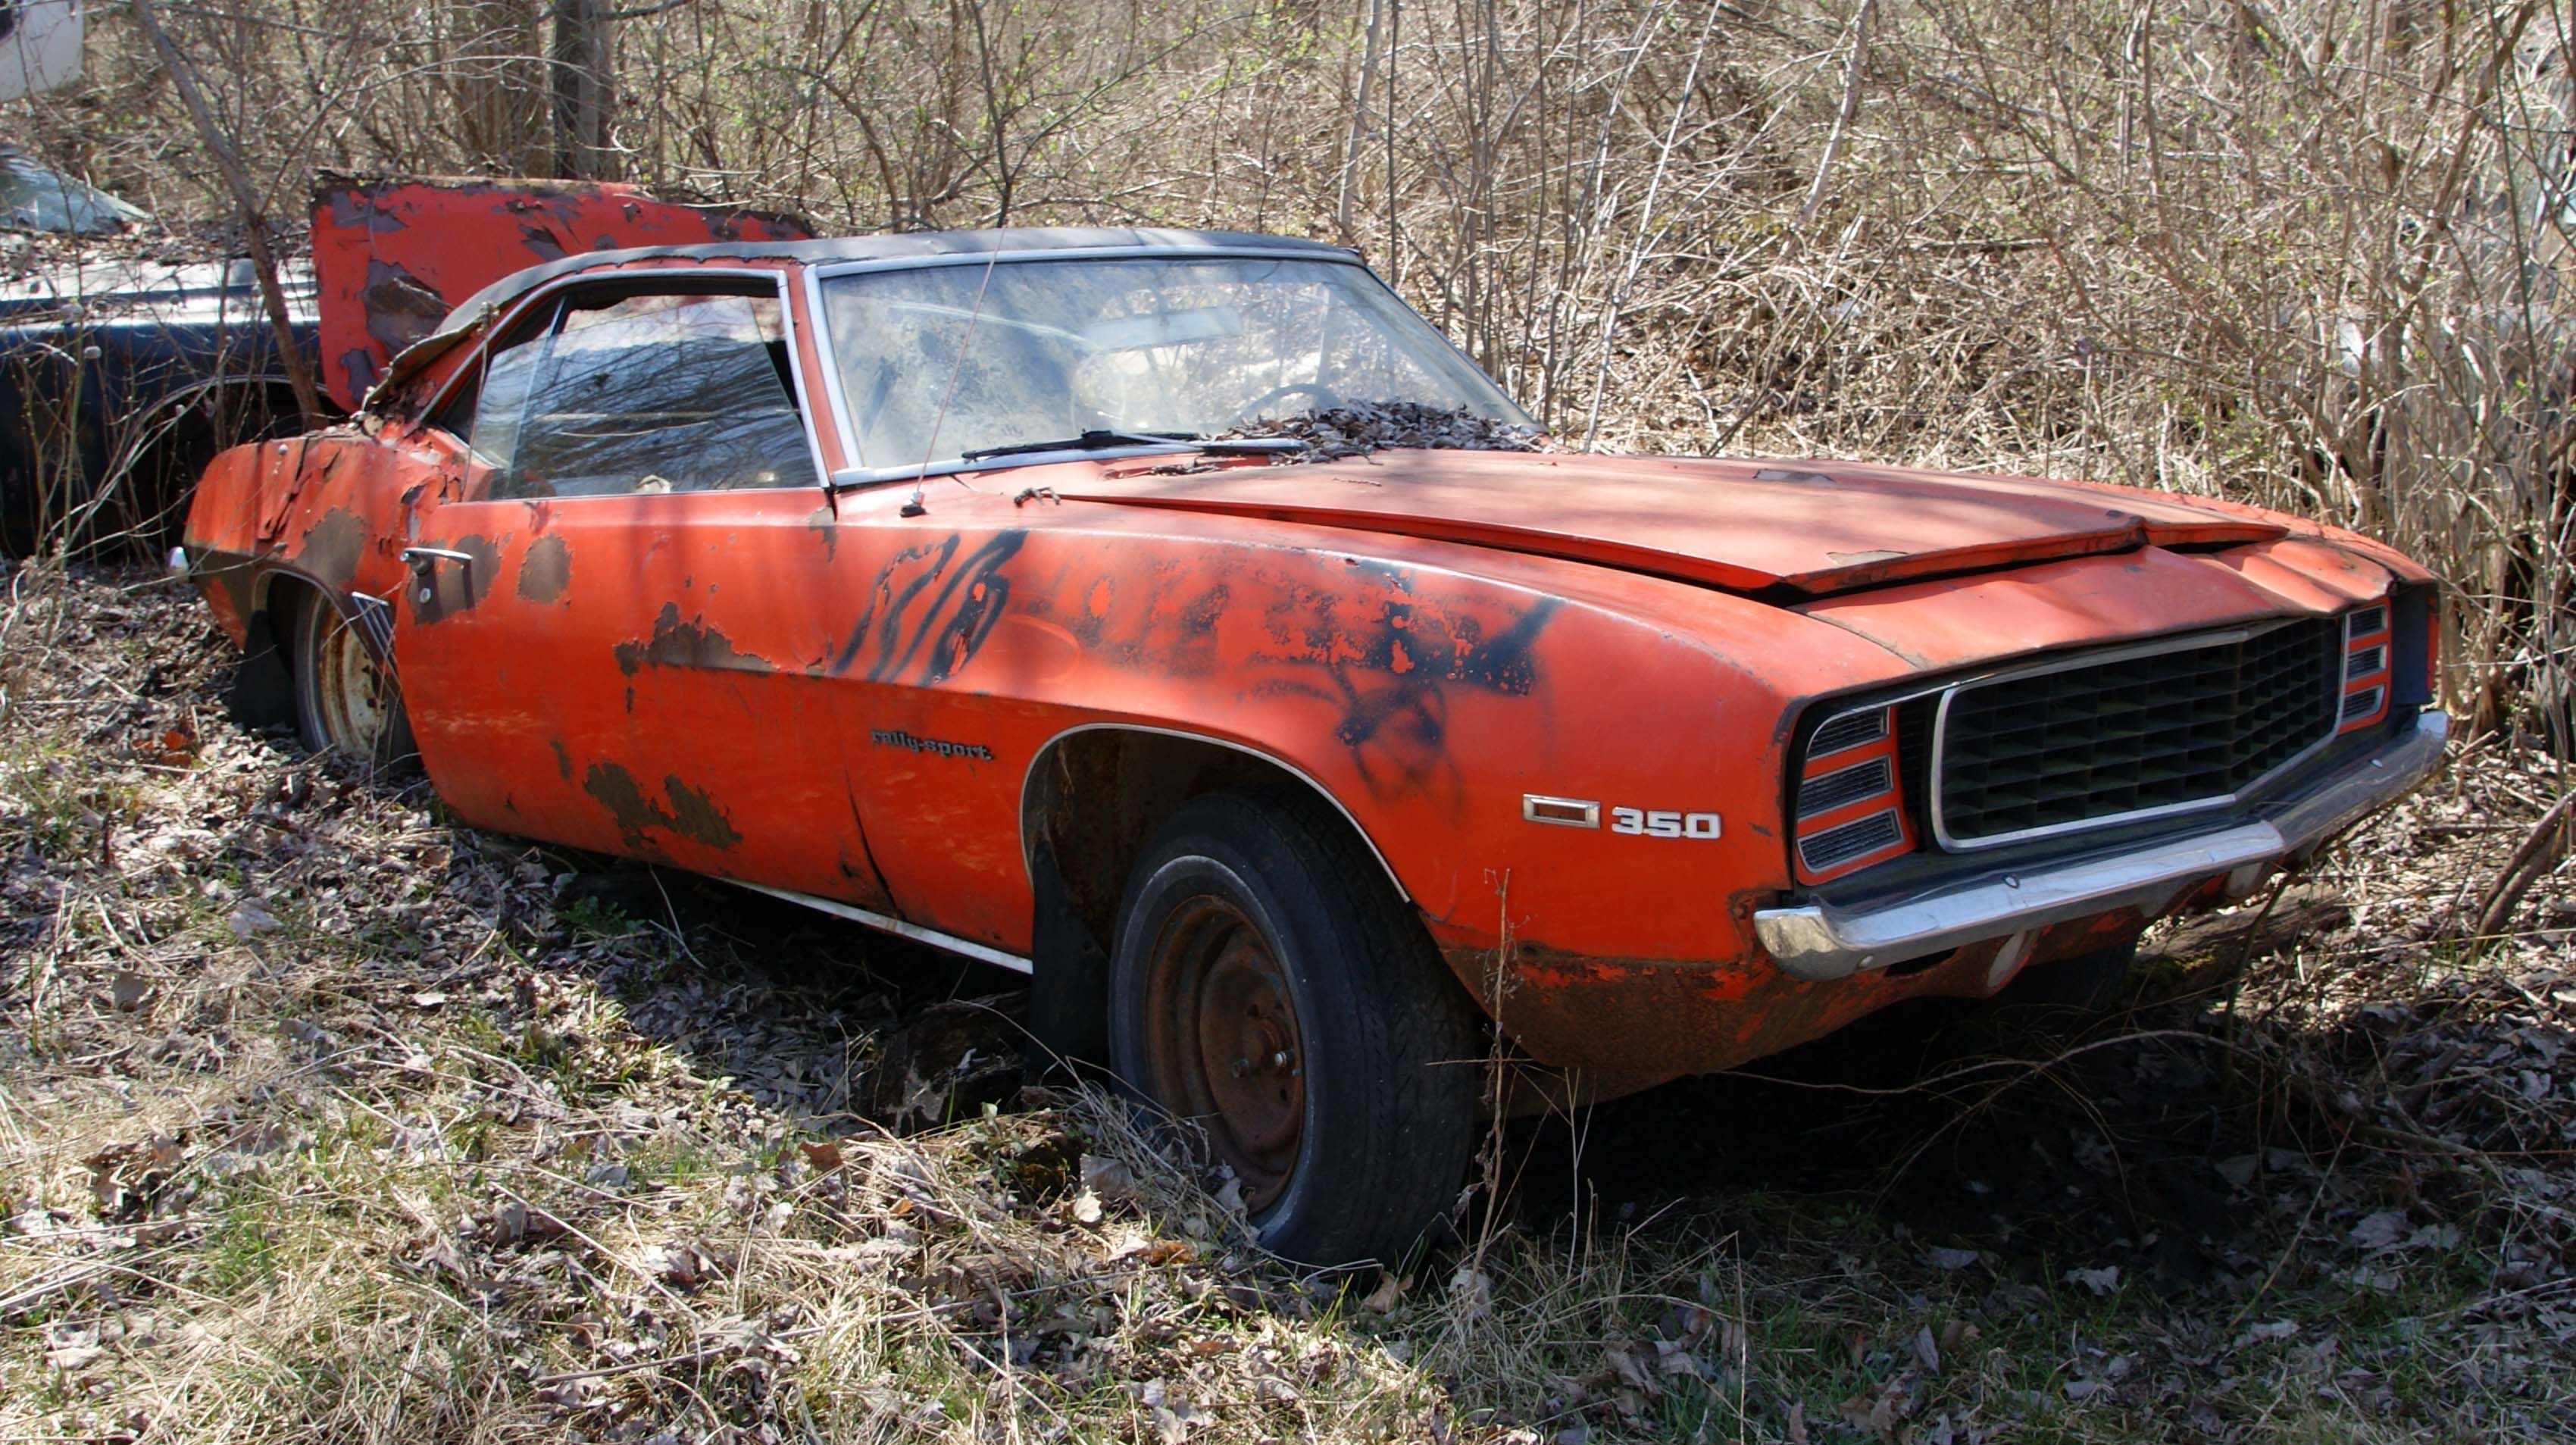 Image Result For Rare Muscle Cars Junk Yards I Am Going To Restore 3400x1907 Jpeg